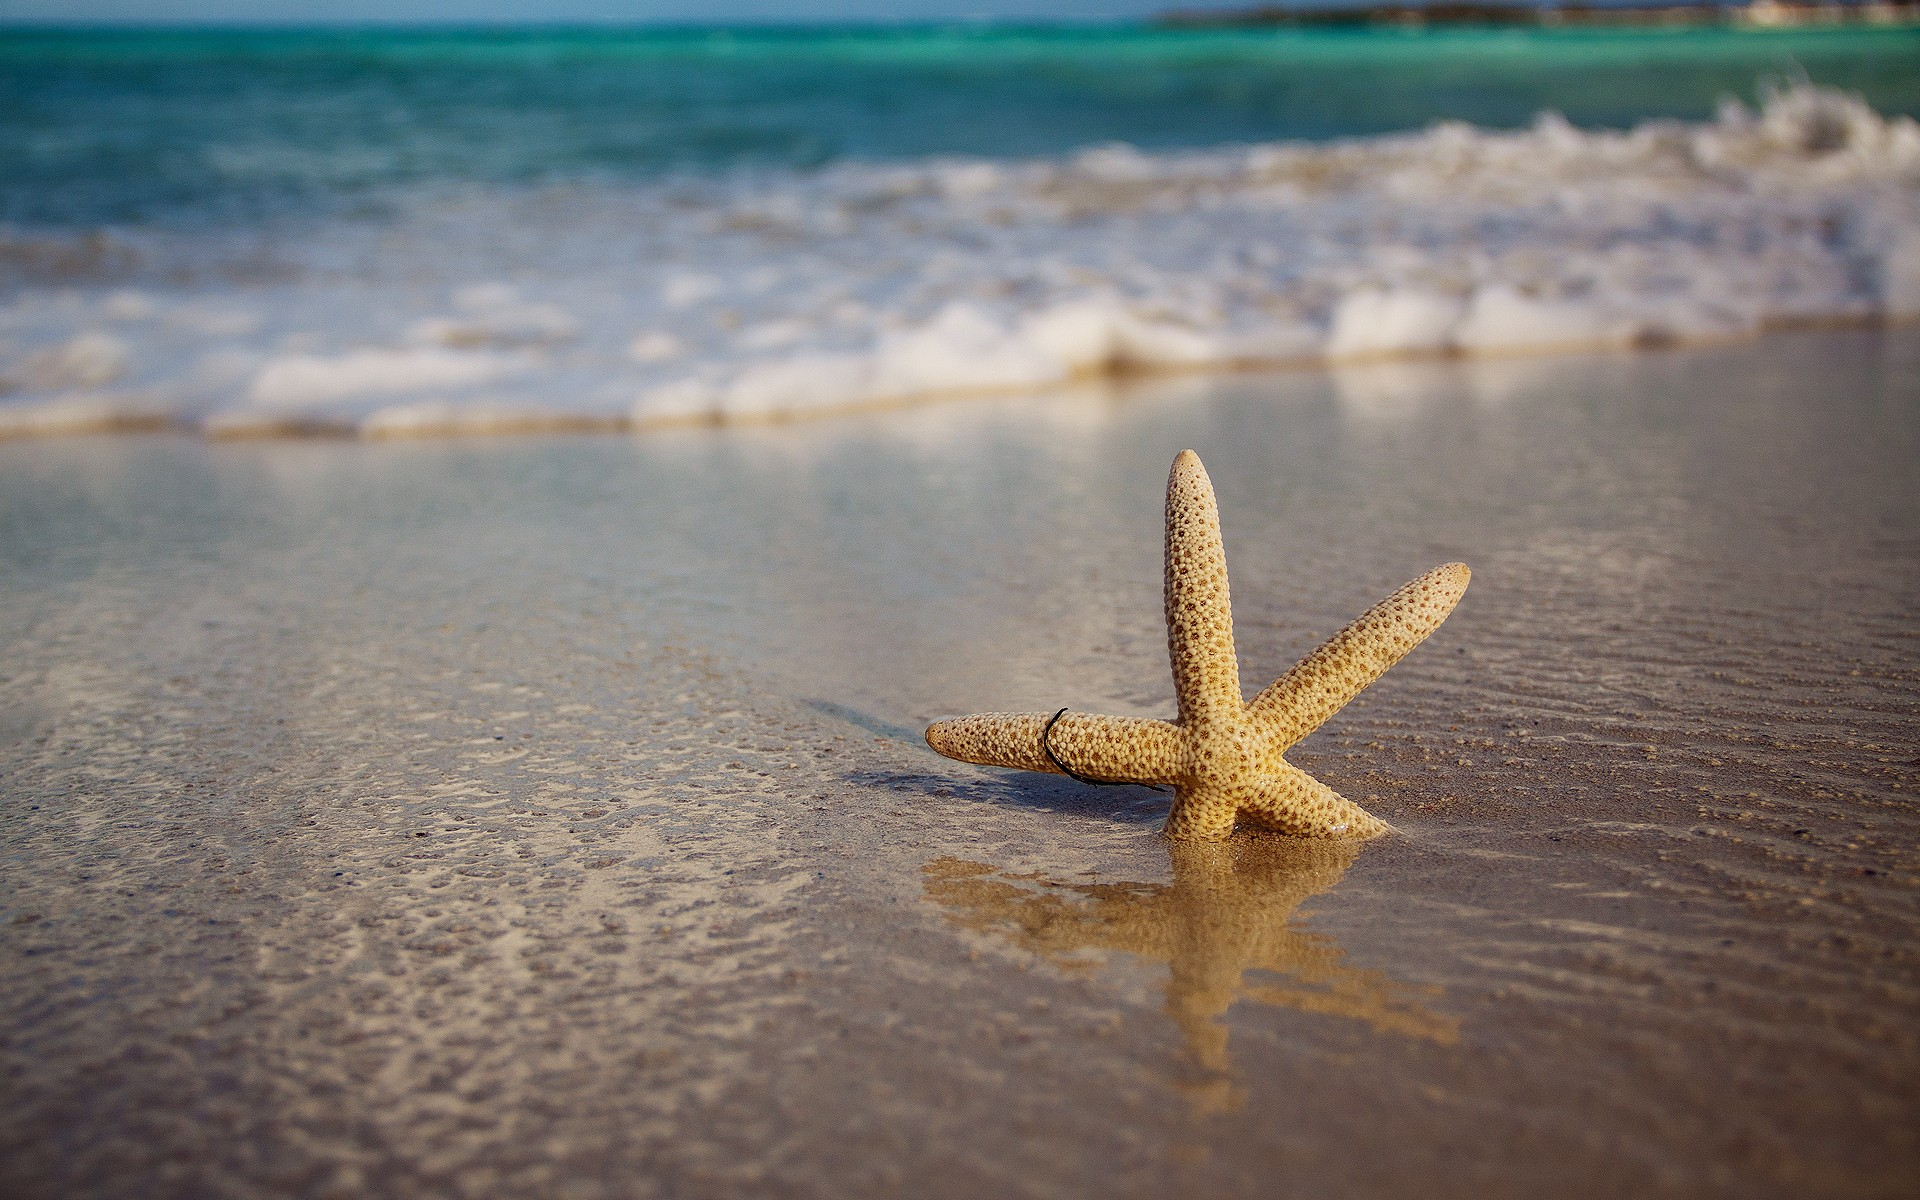 33815 download wallpaper Background, Starfish screensavers and pictures for free